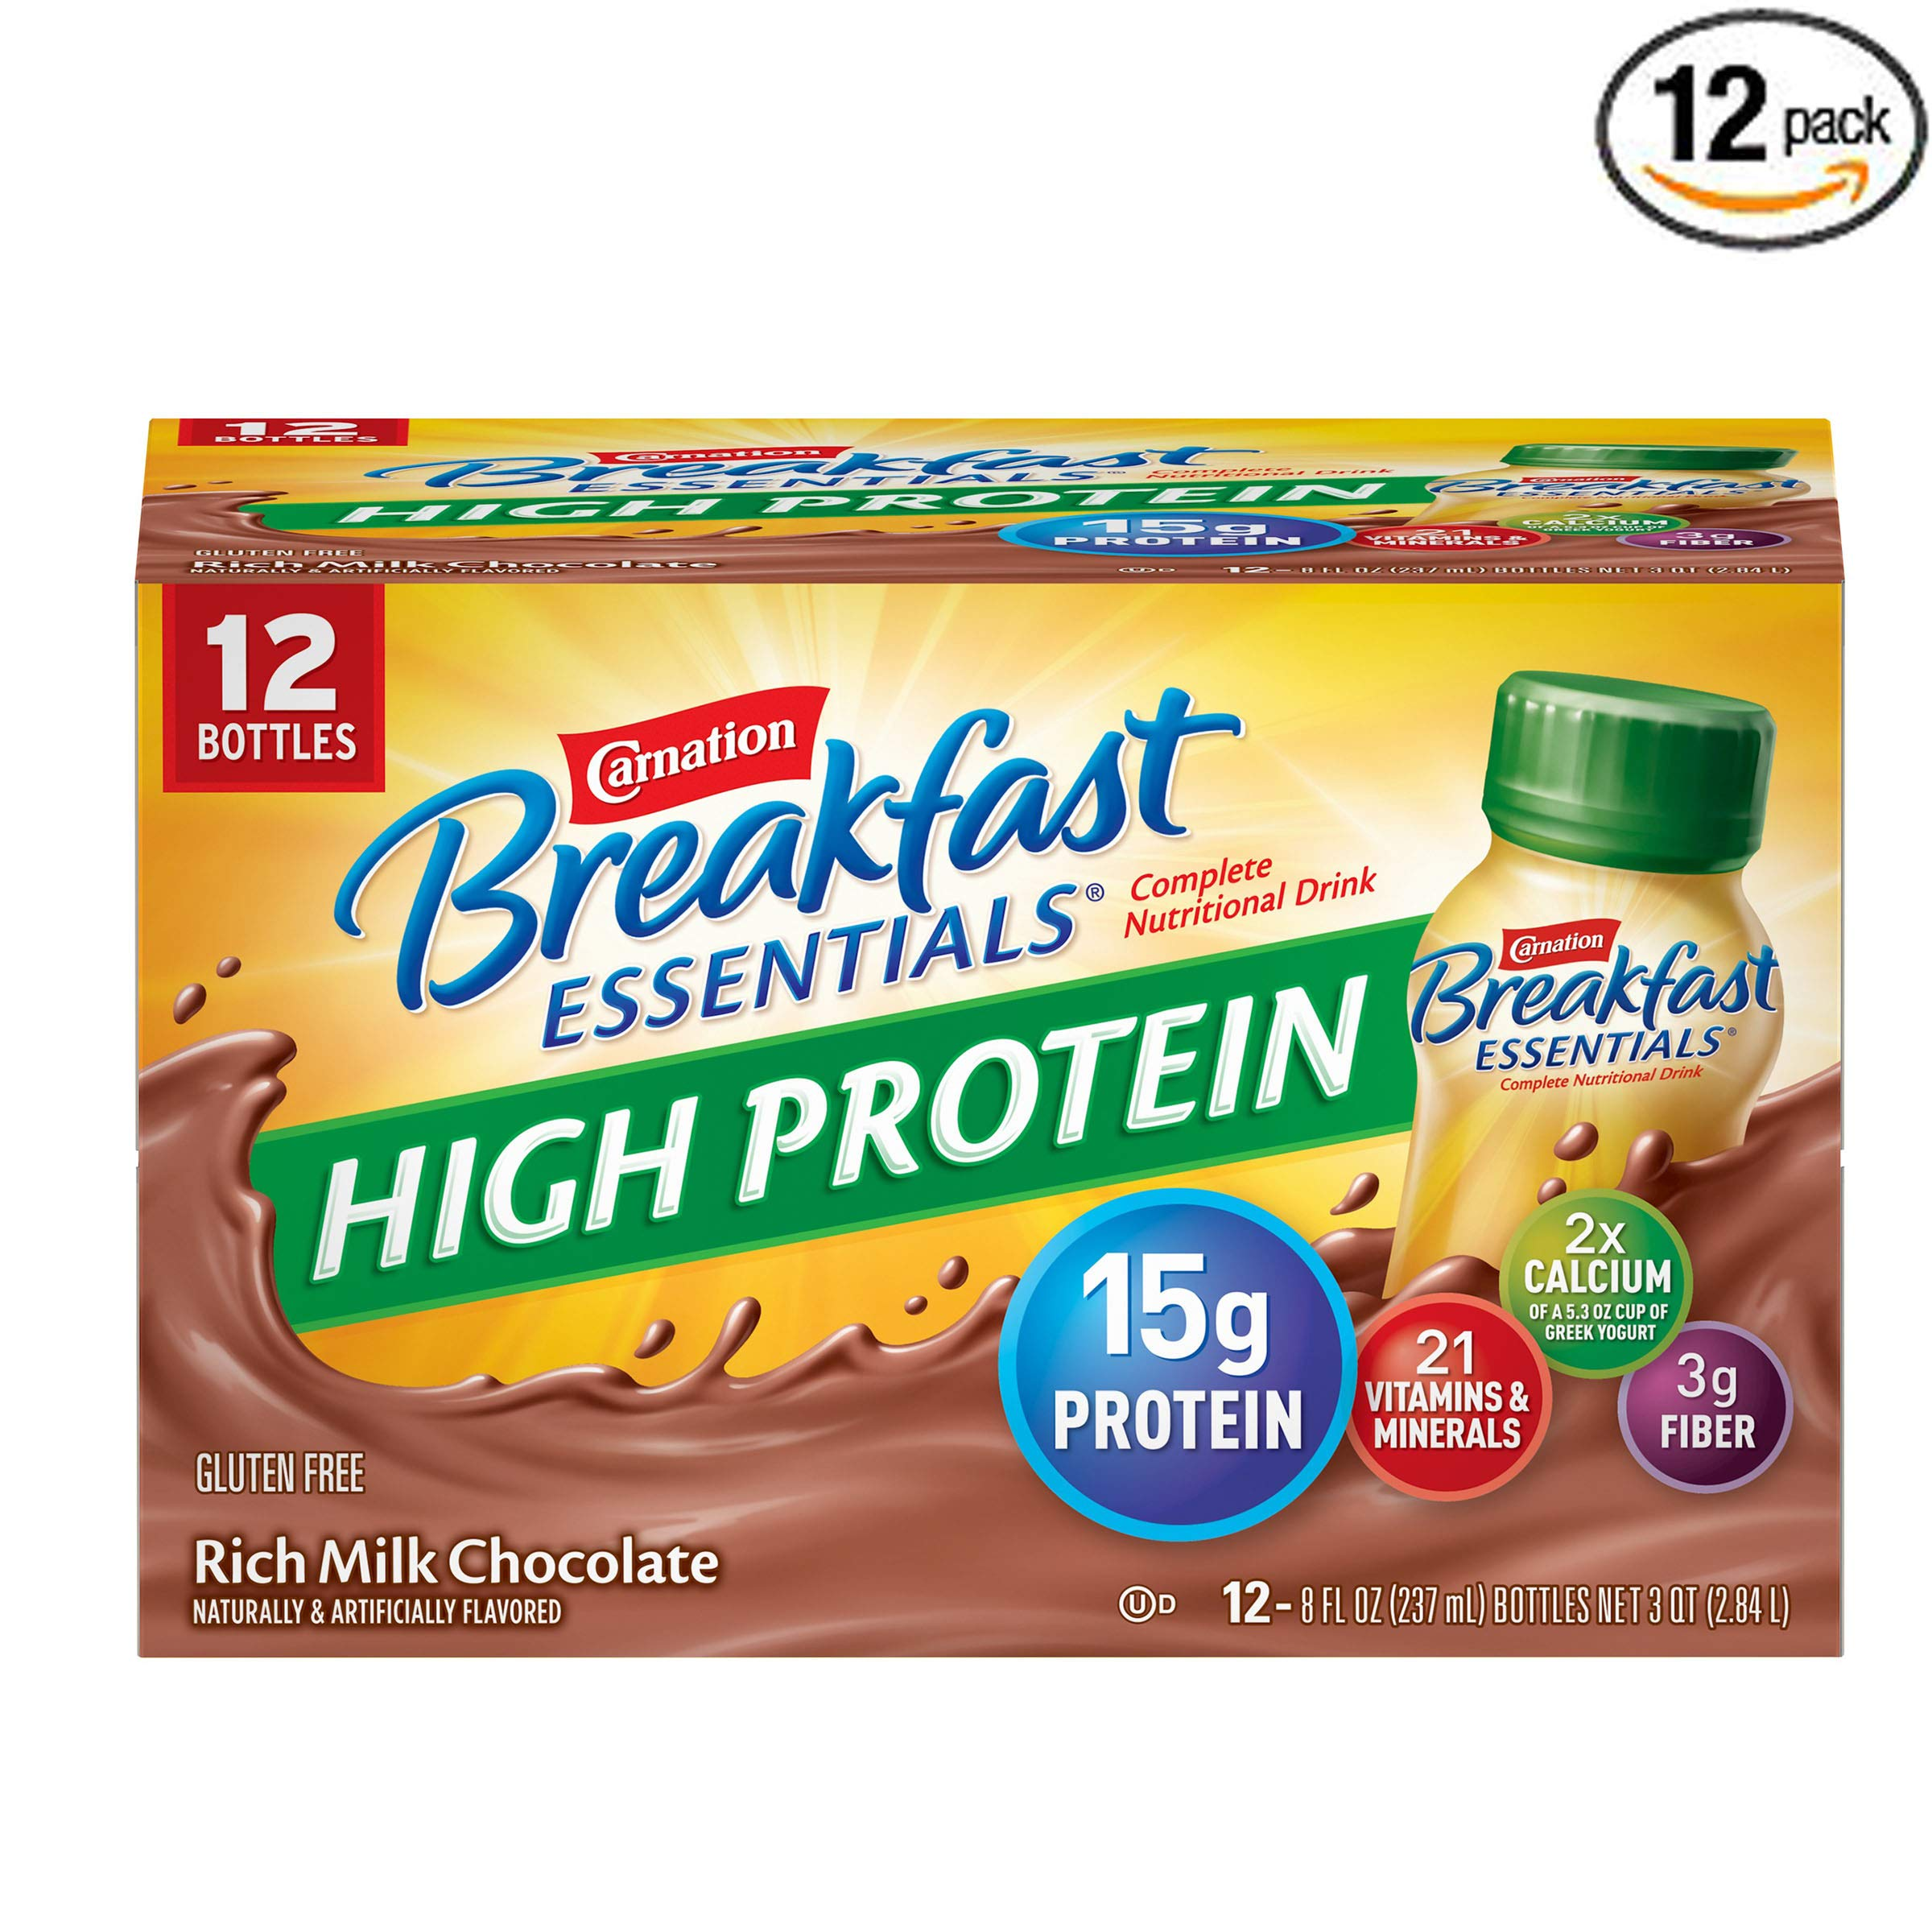 Carnation Breakfast Essentials High Protein Ready To Drink, Rich Milk Chocolate, 8 Fluid Ounce - Pack of 12